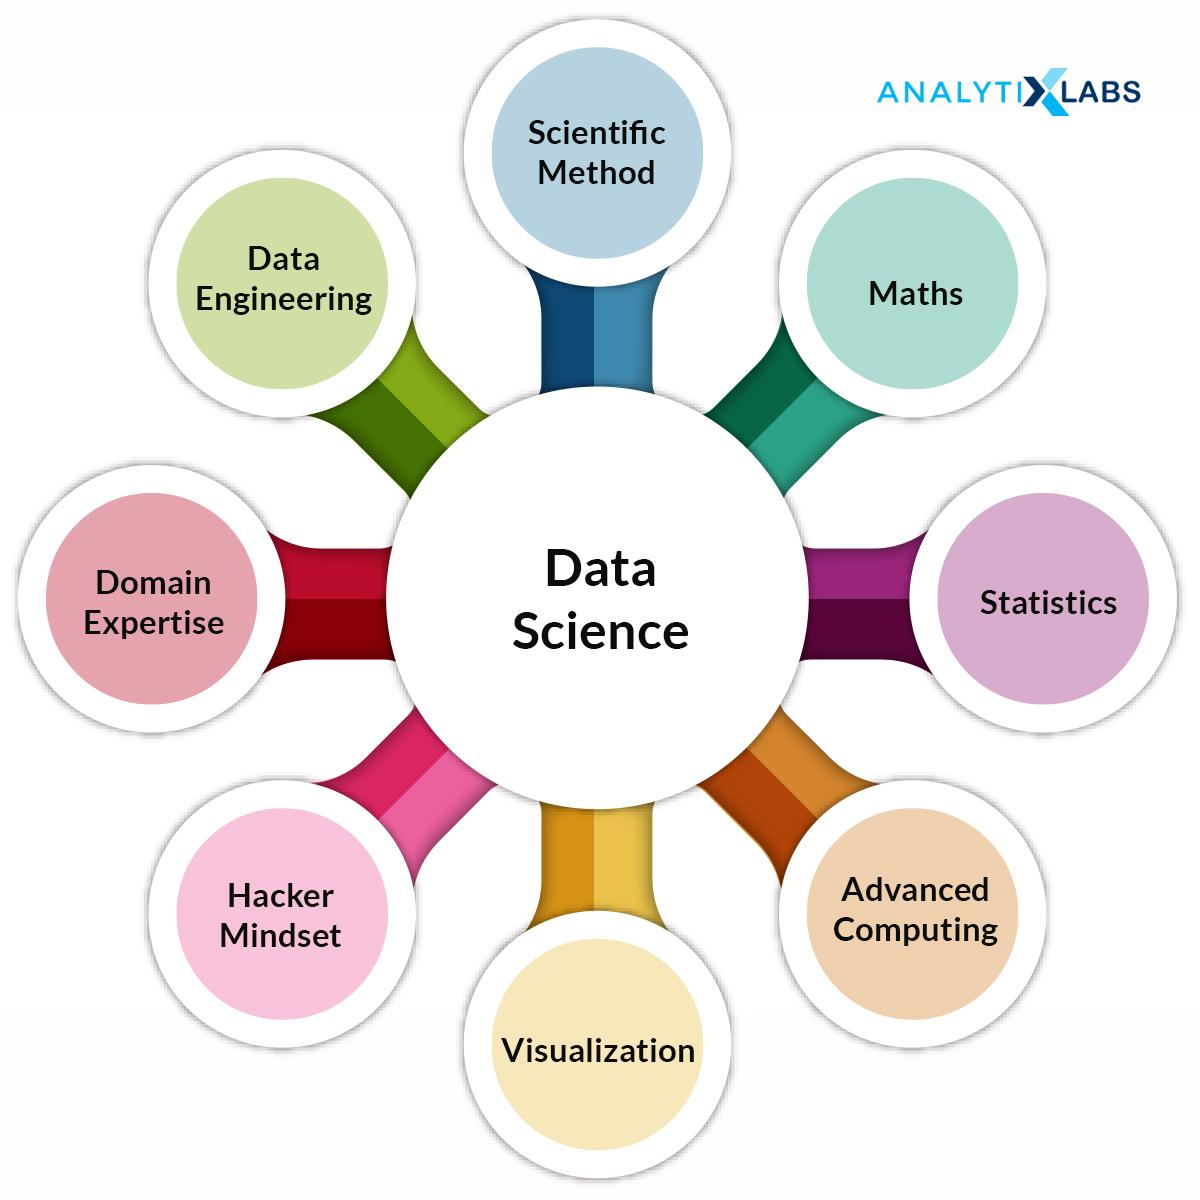 Components of Data Science